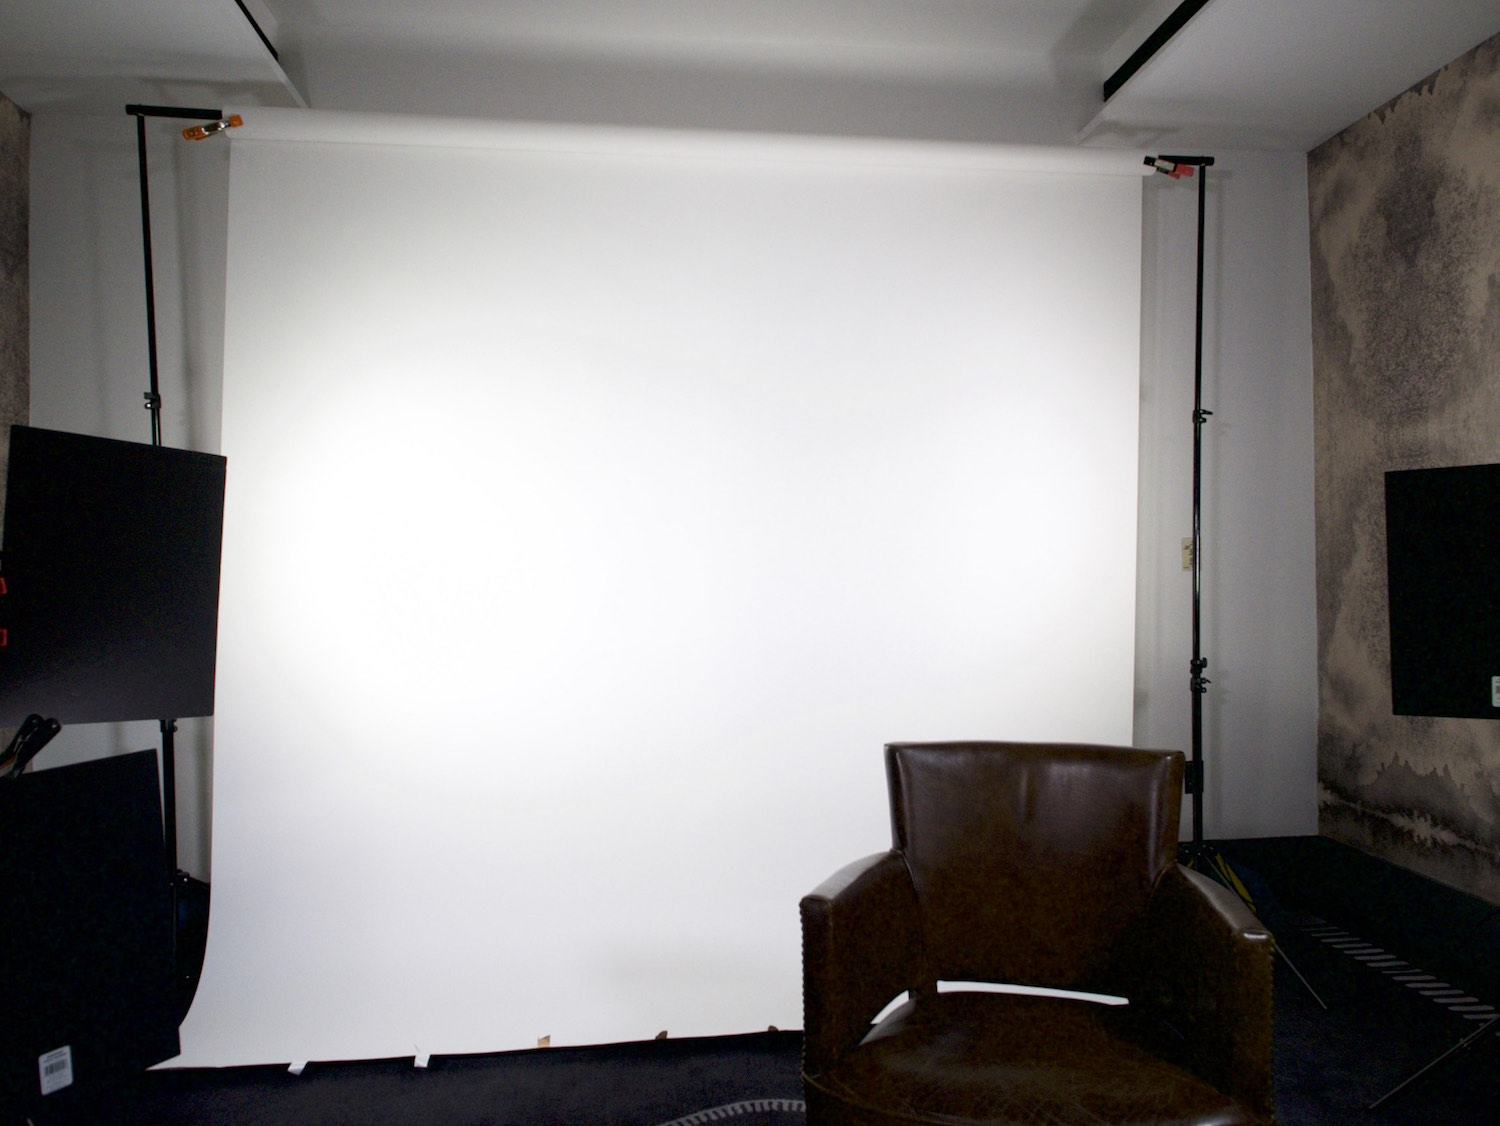 Behind the scenes interview setup with a white seamless backdrop